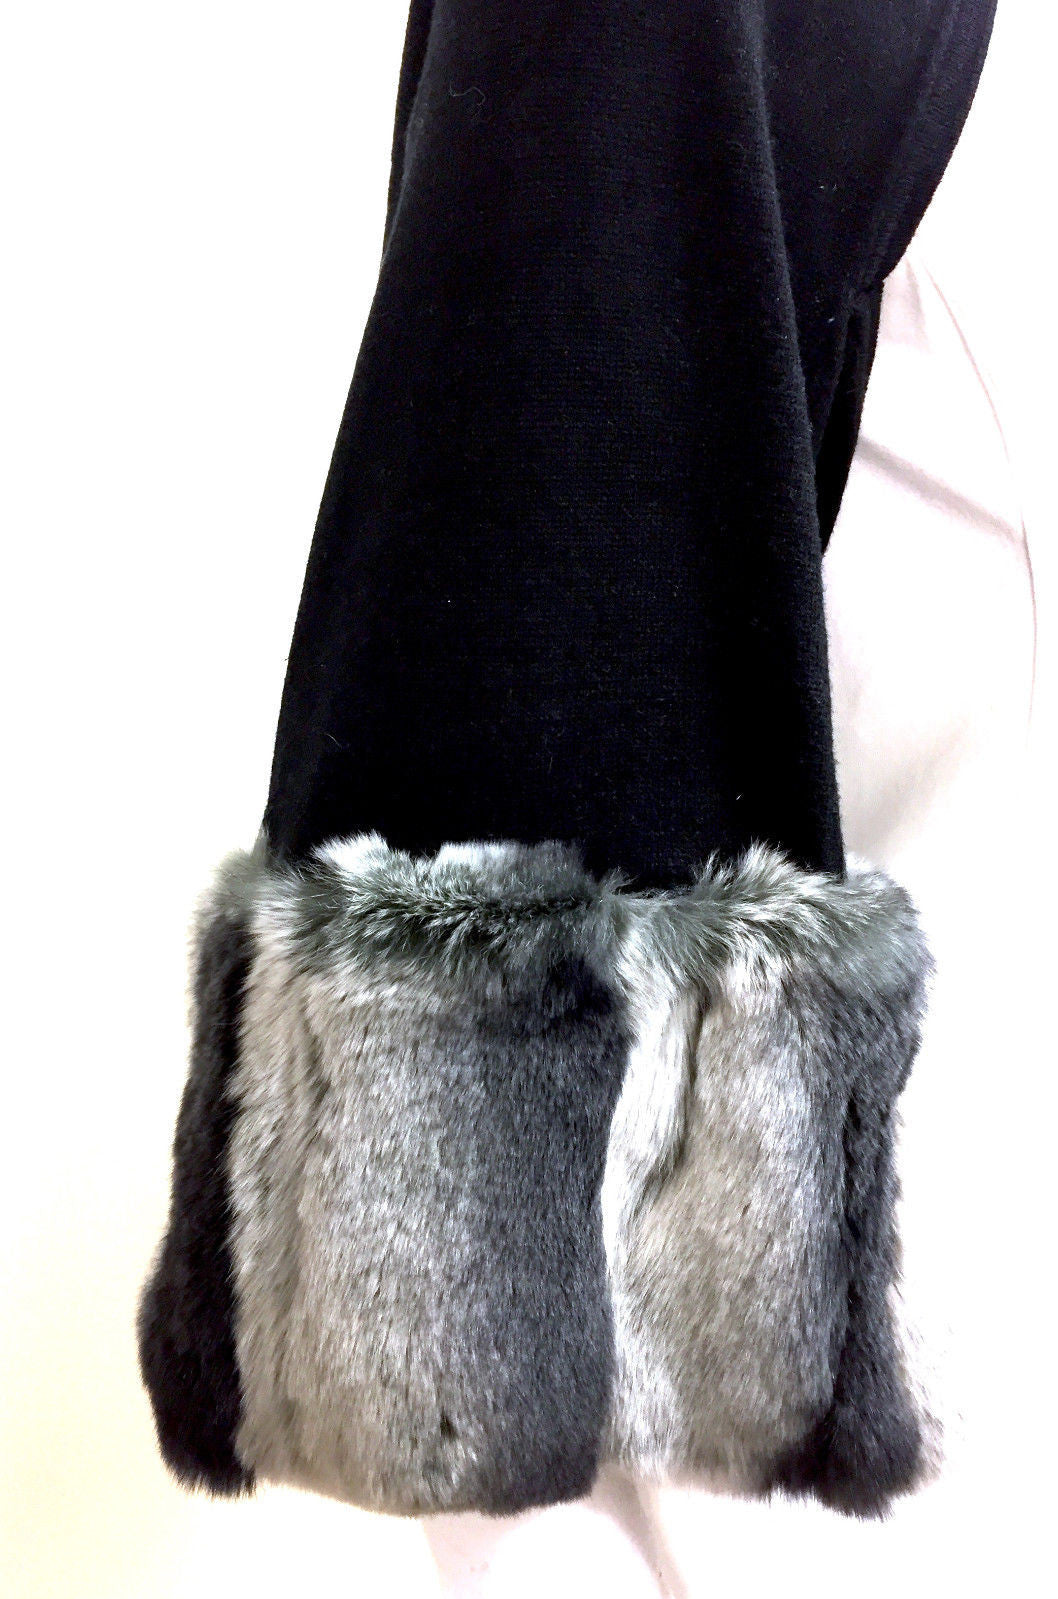 bisbiz.com HARRISON MORGAN Black Silk & Cashmere Shrug Bolero Scarf with Gray Fur Cuffs Size: One Size - Bis Luxury Resale